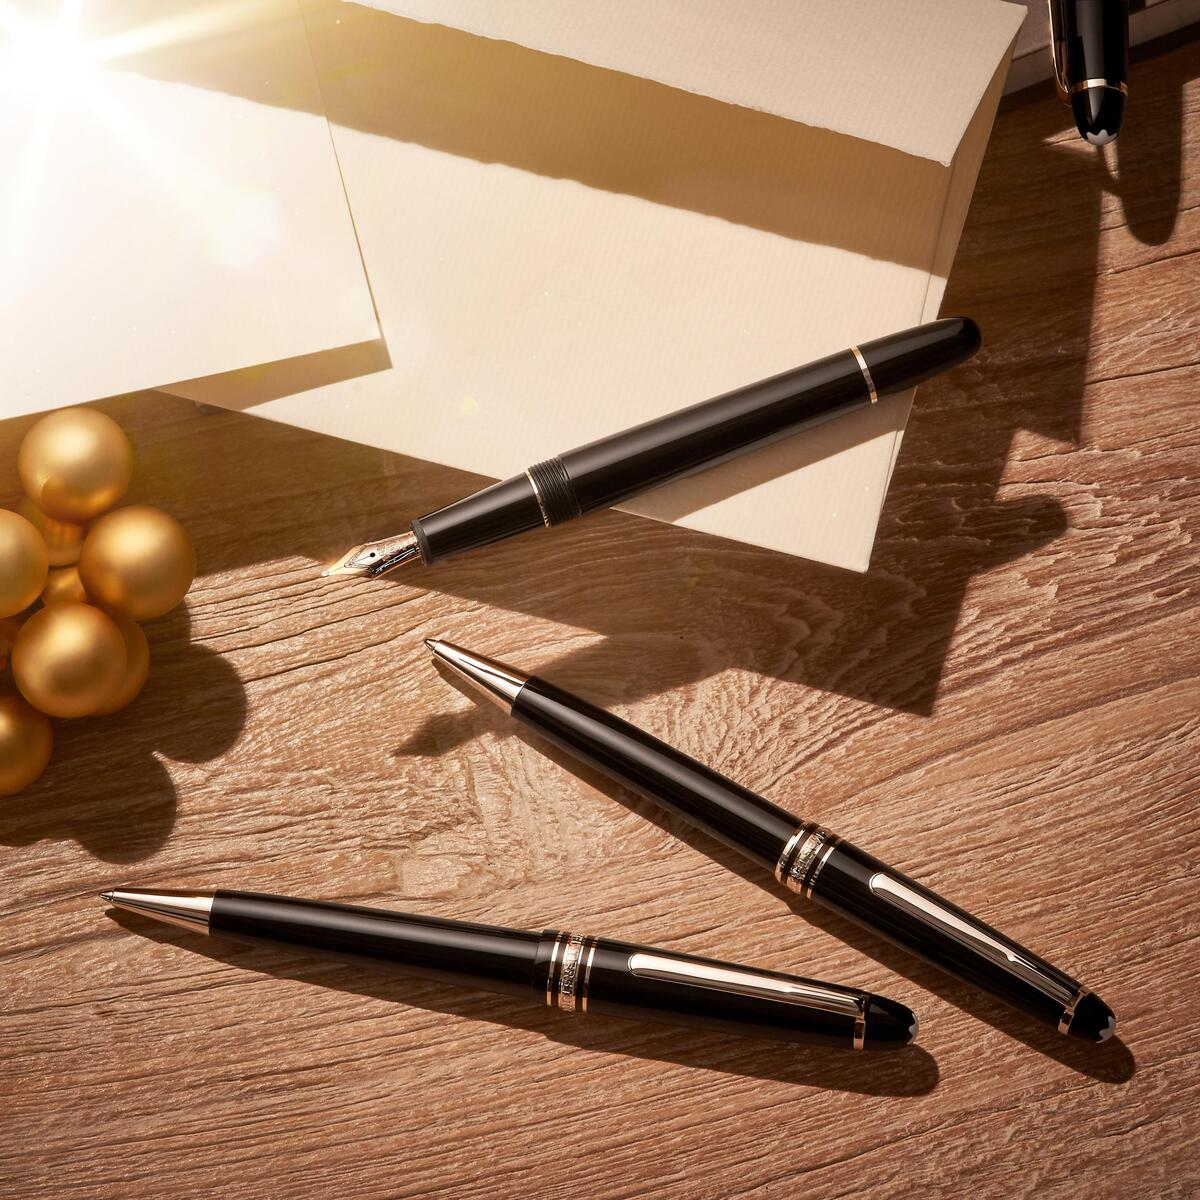 Cult Pens announces a new partnership with Montblanc